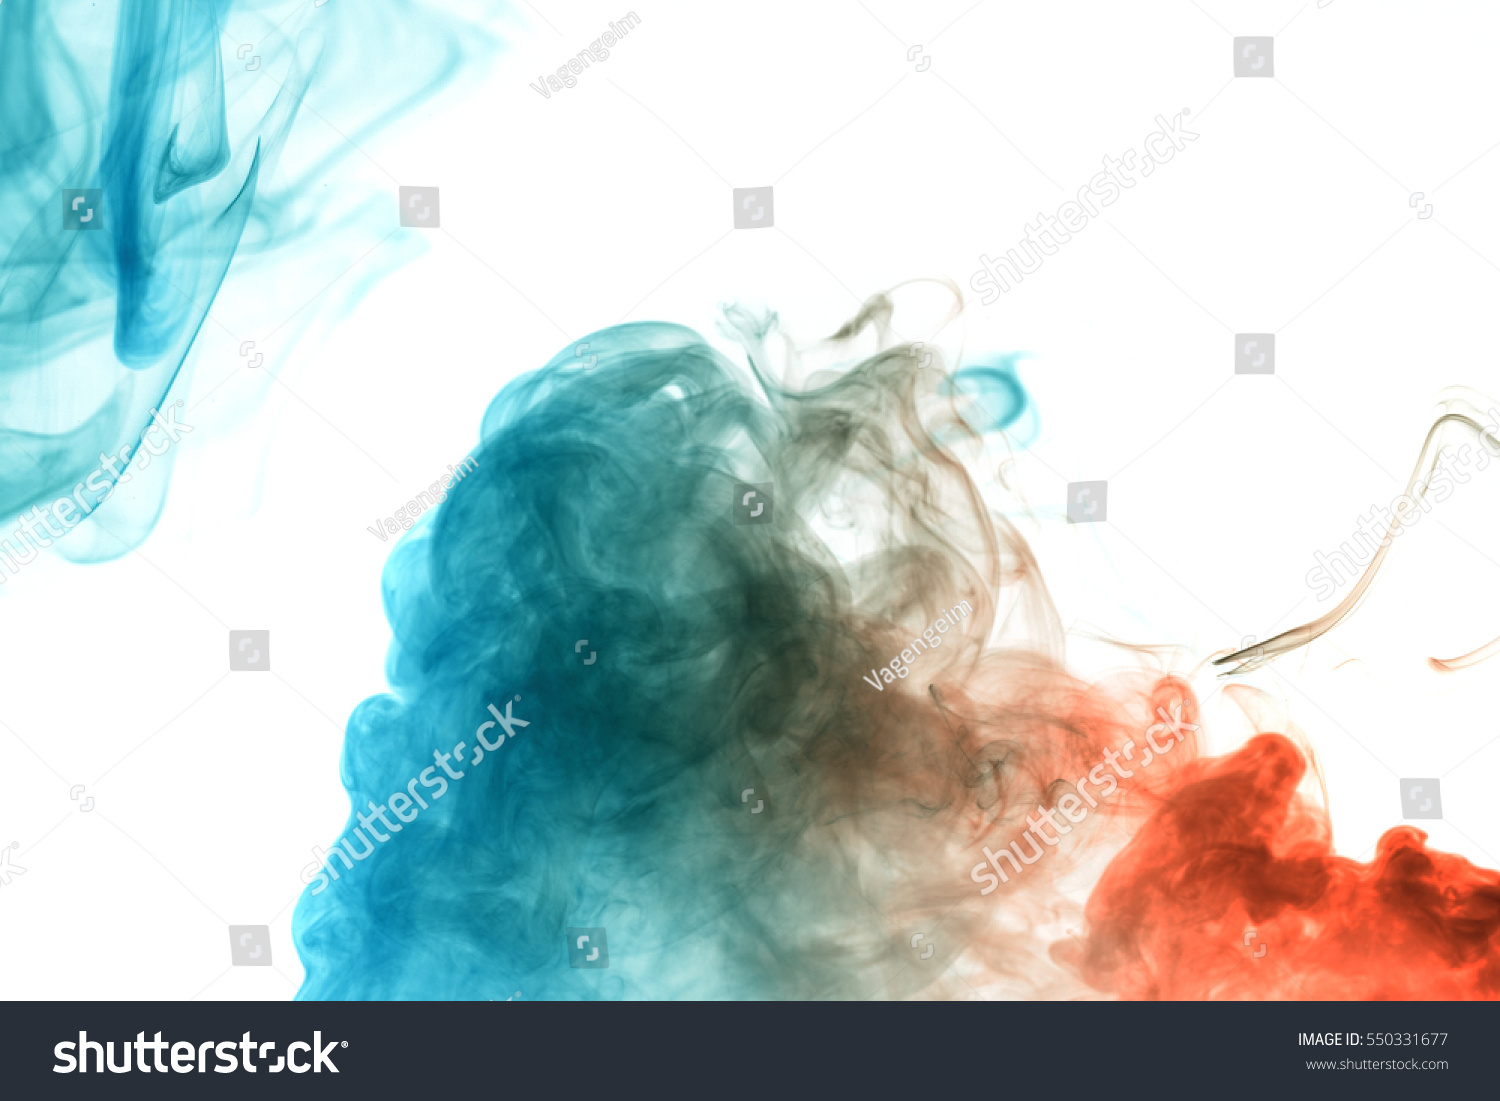 Abstract Smoke Weipa Personal Vaporizers Fragrant Stock Photo 550331677 - Shutterstock